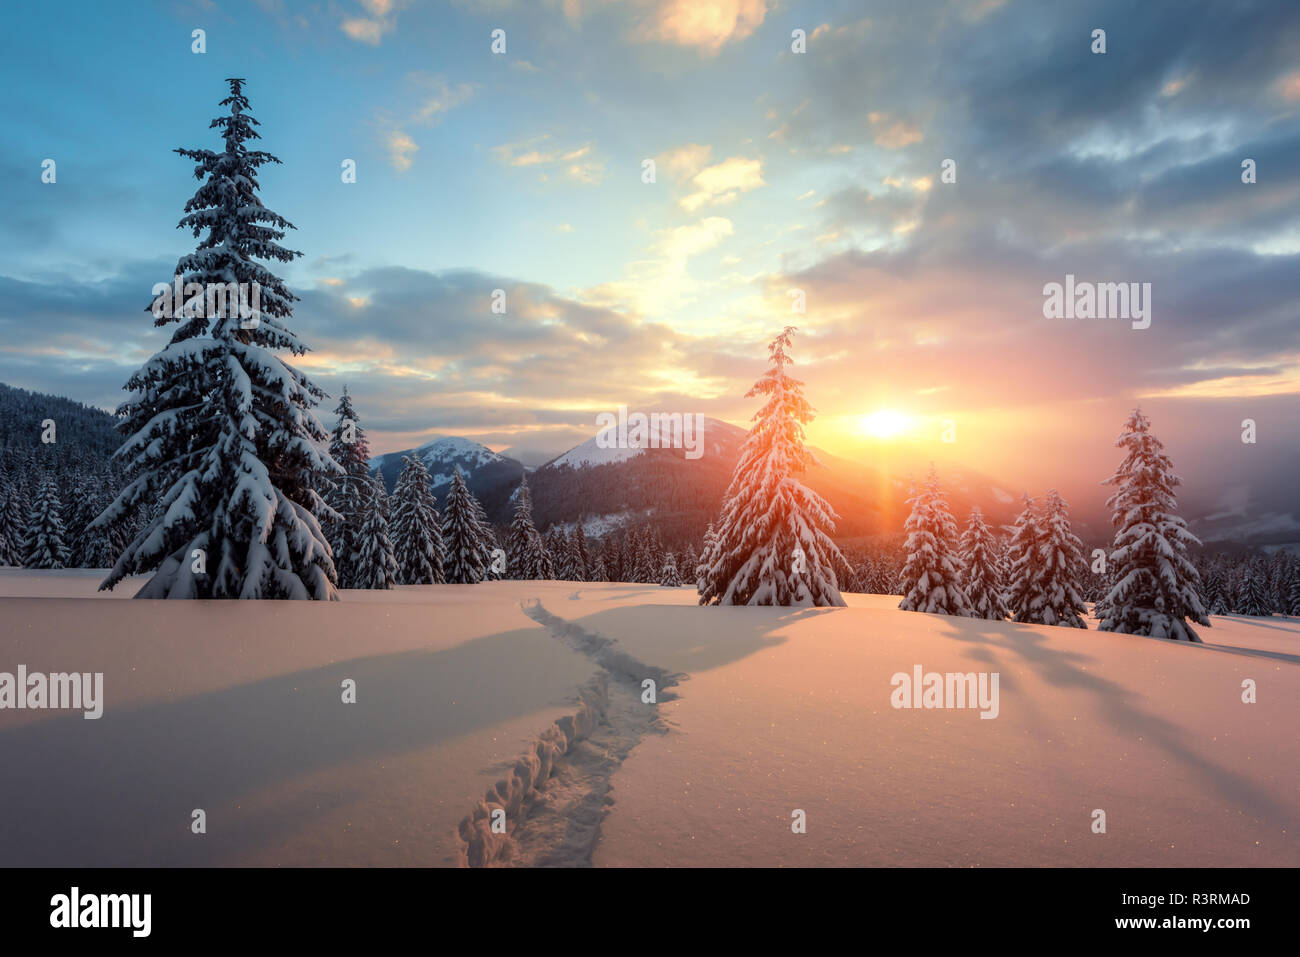 Fantastic orange winter landscape in snowy mountains glowing by sunlight. Dramatic wintry scene with snowy trees. Christmas holiday concept. Stock Photo